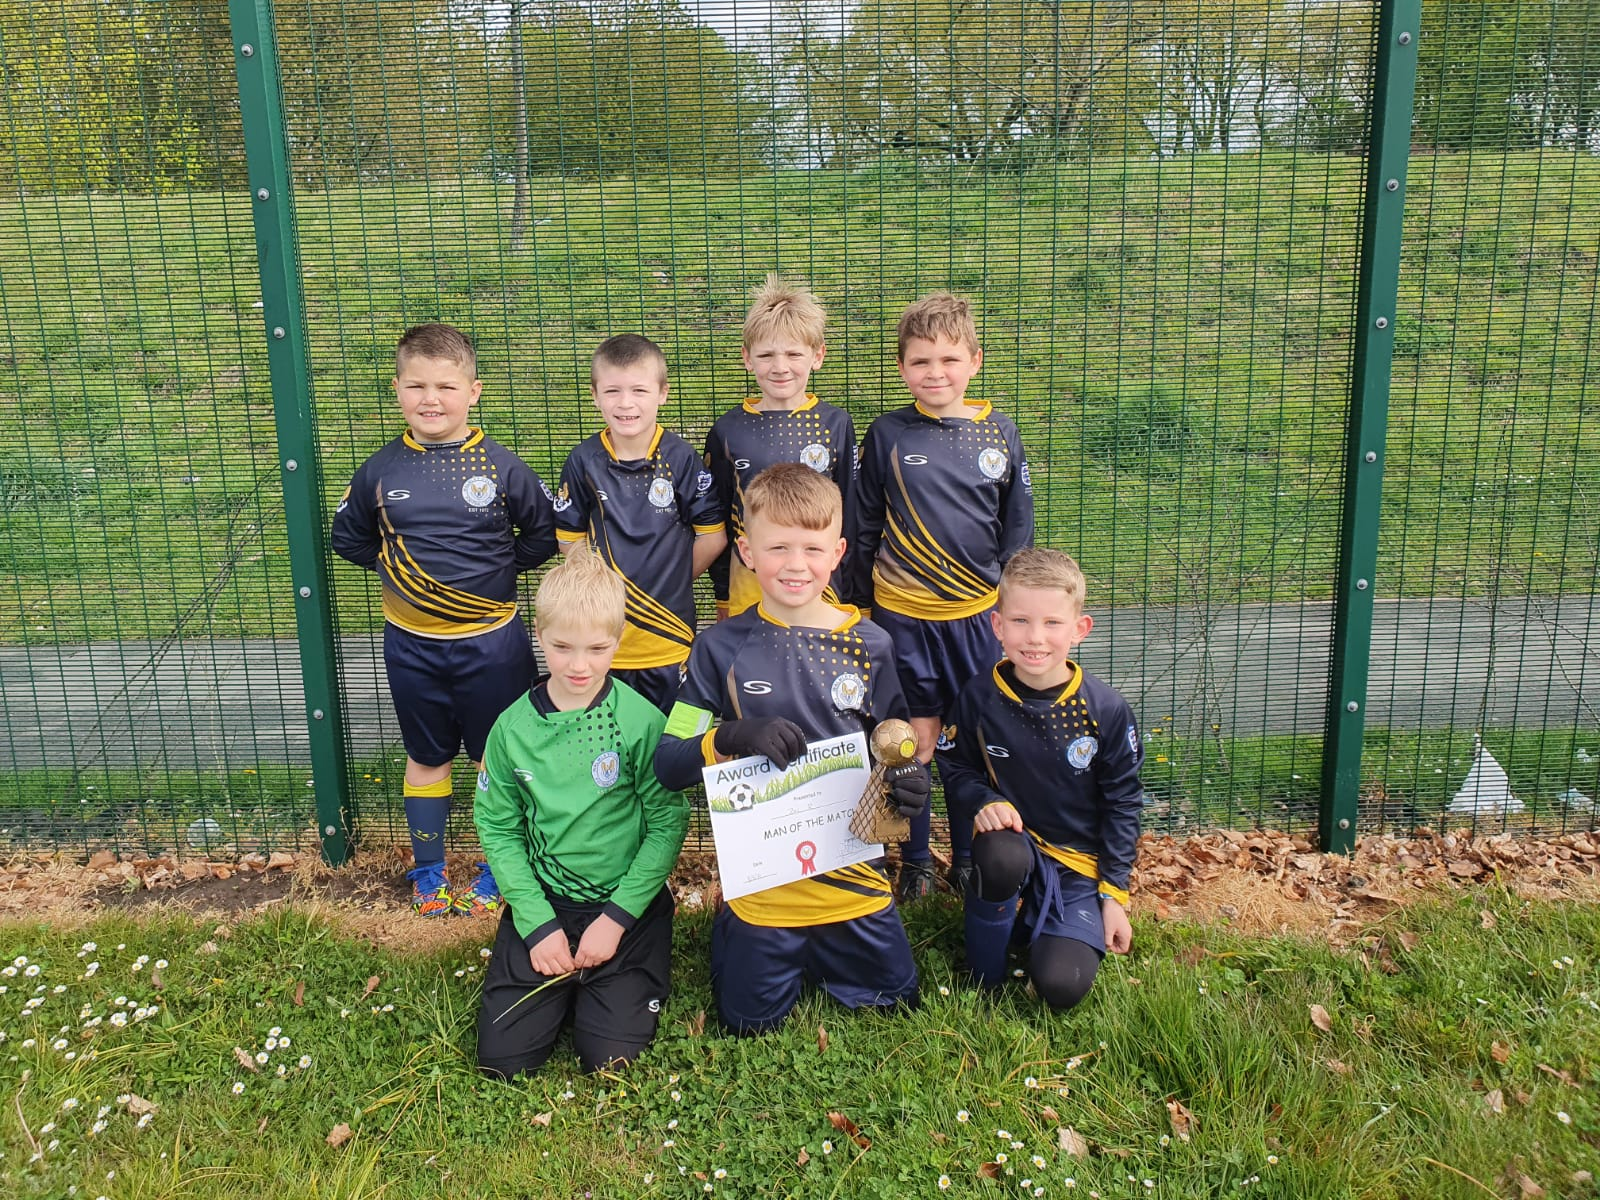 Walmley Colron Blues draw versus Holy Name